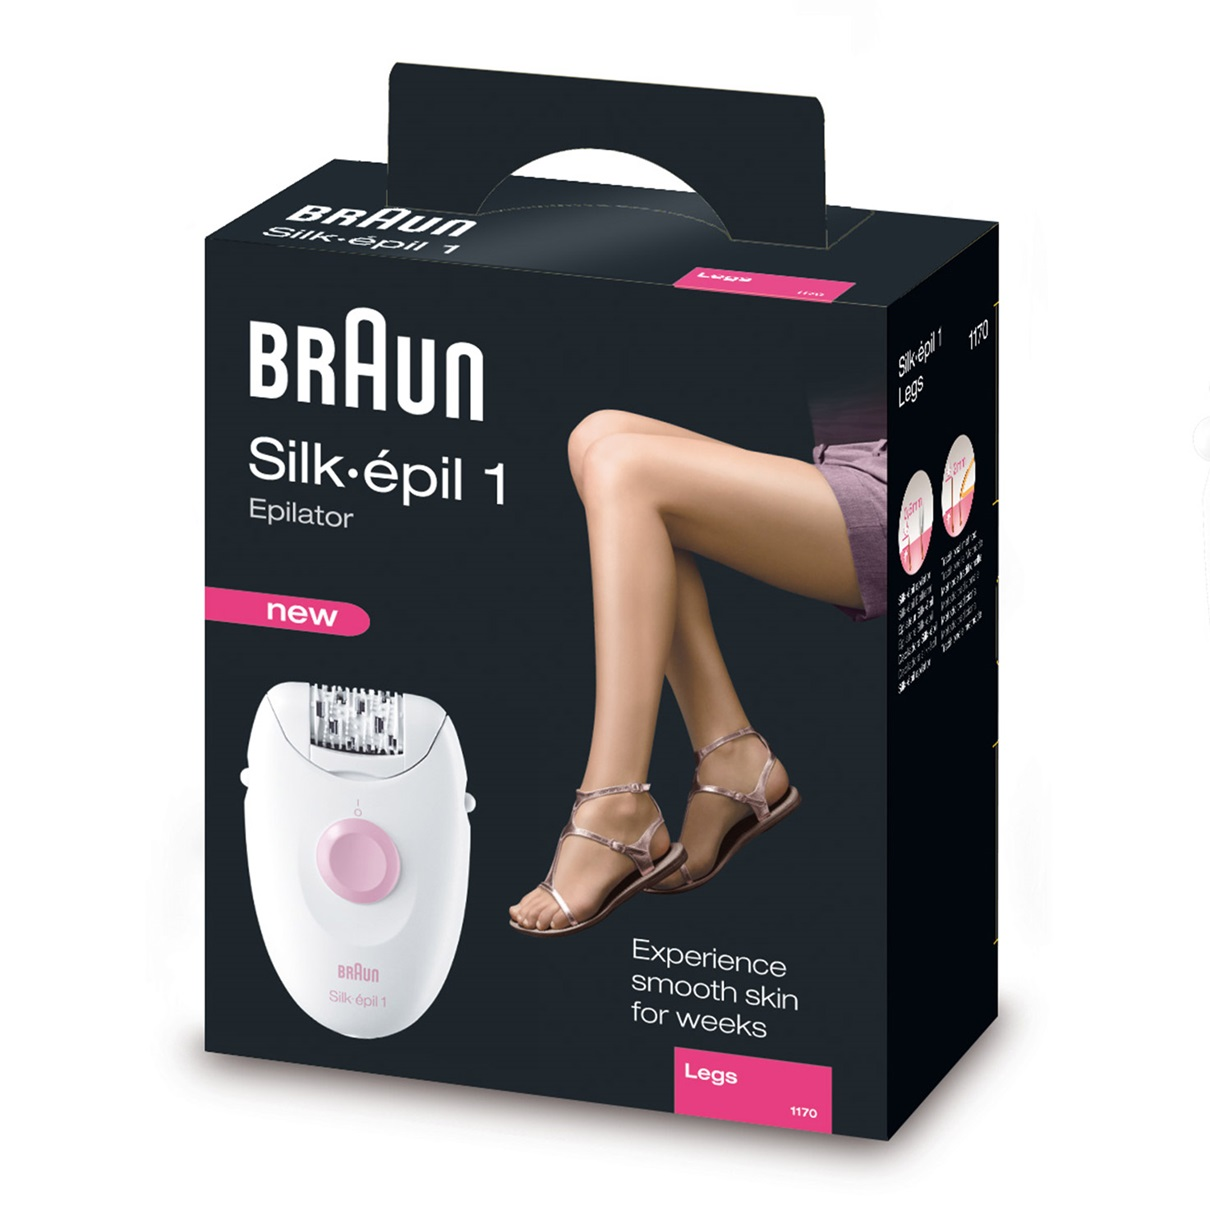 Braun Silk-épil 1 - 1170 Legs Epilator - packaging